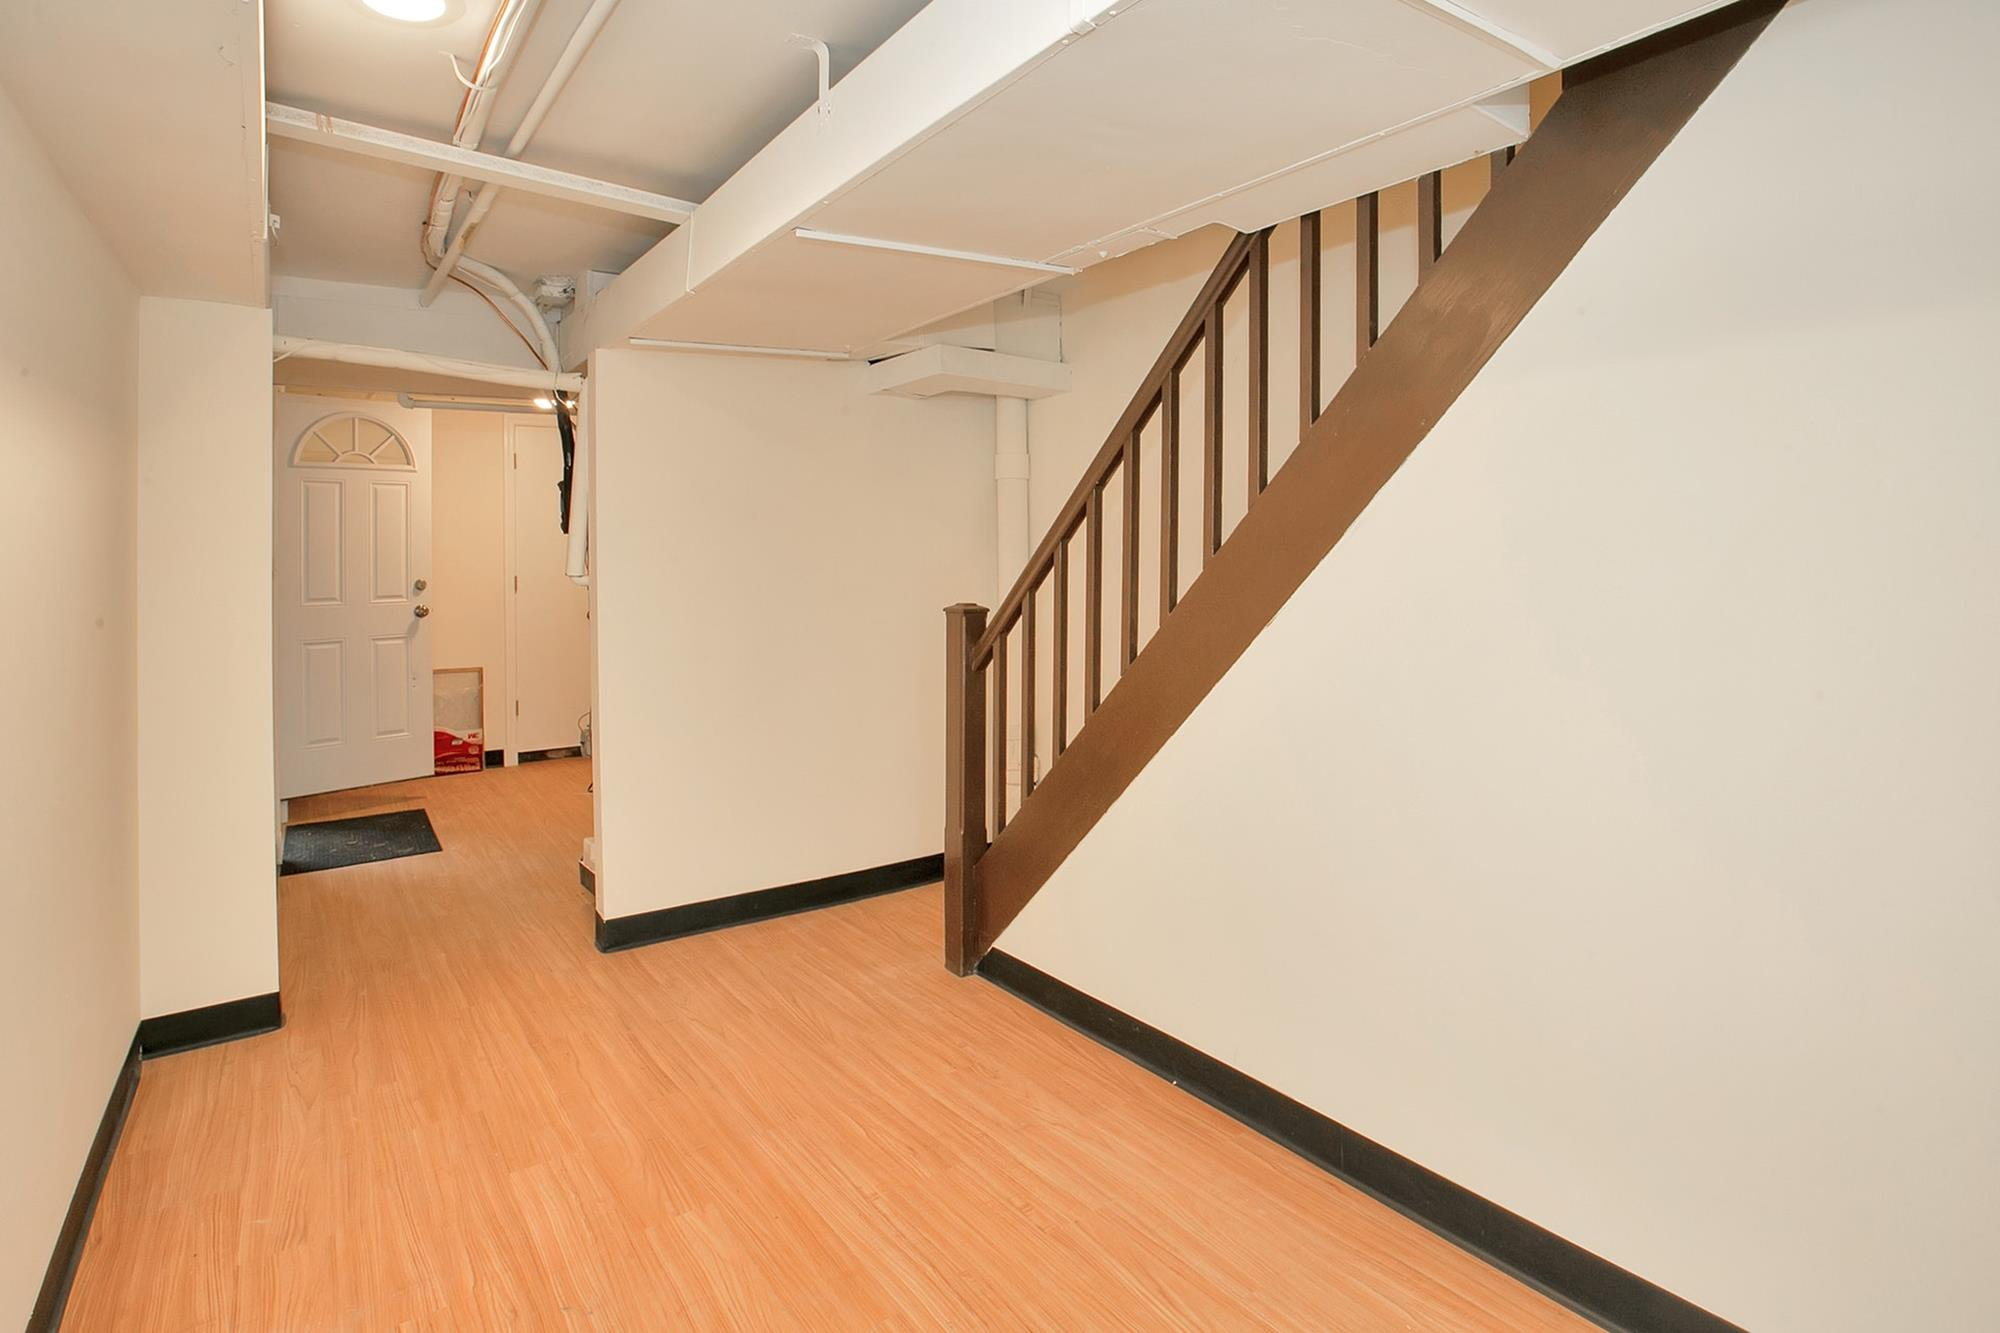 Renovated & Spacious 3-Bd. Brick Townhouse w/ Terrace, Deck & Yard at 304 West 234th Street